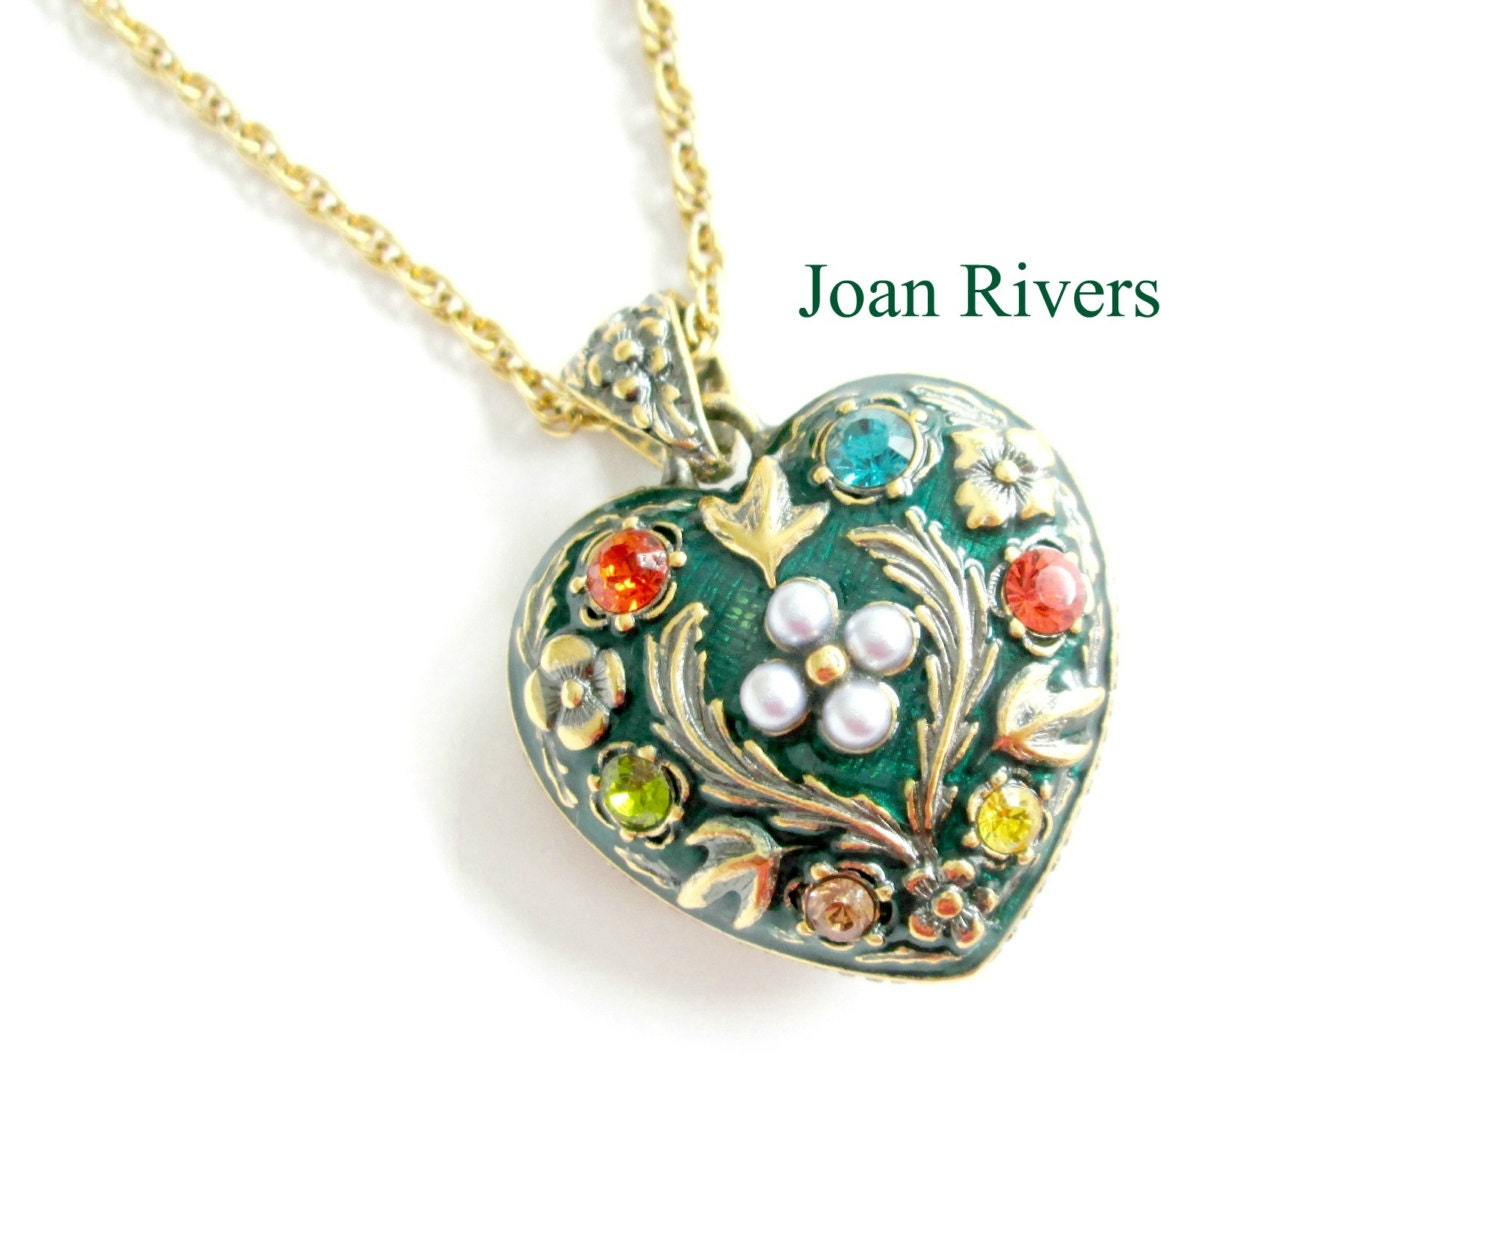 Joan rivers puff heart pendant necklace for Joan rivers jewelry necklaces